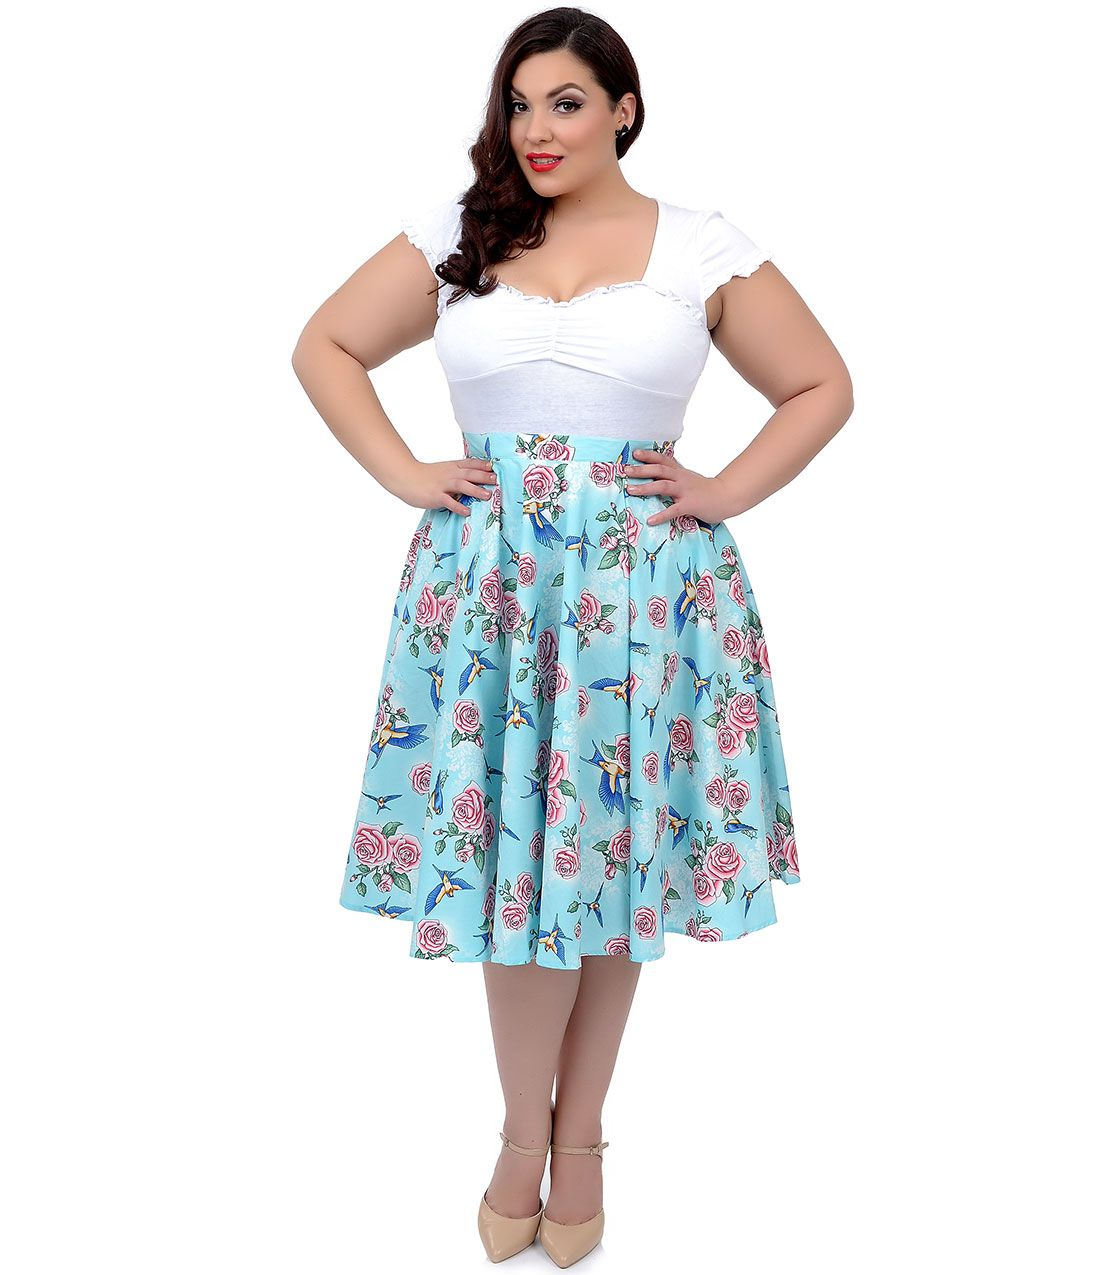 1950s Plus Size Dresses, Clothing | Swing skirt, 1950s style and 1950s